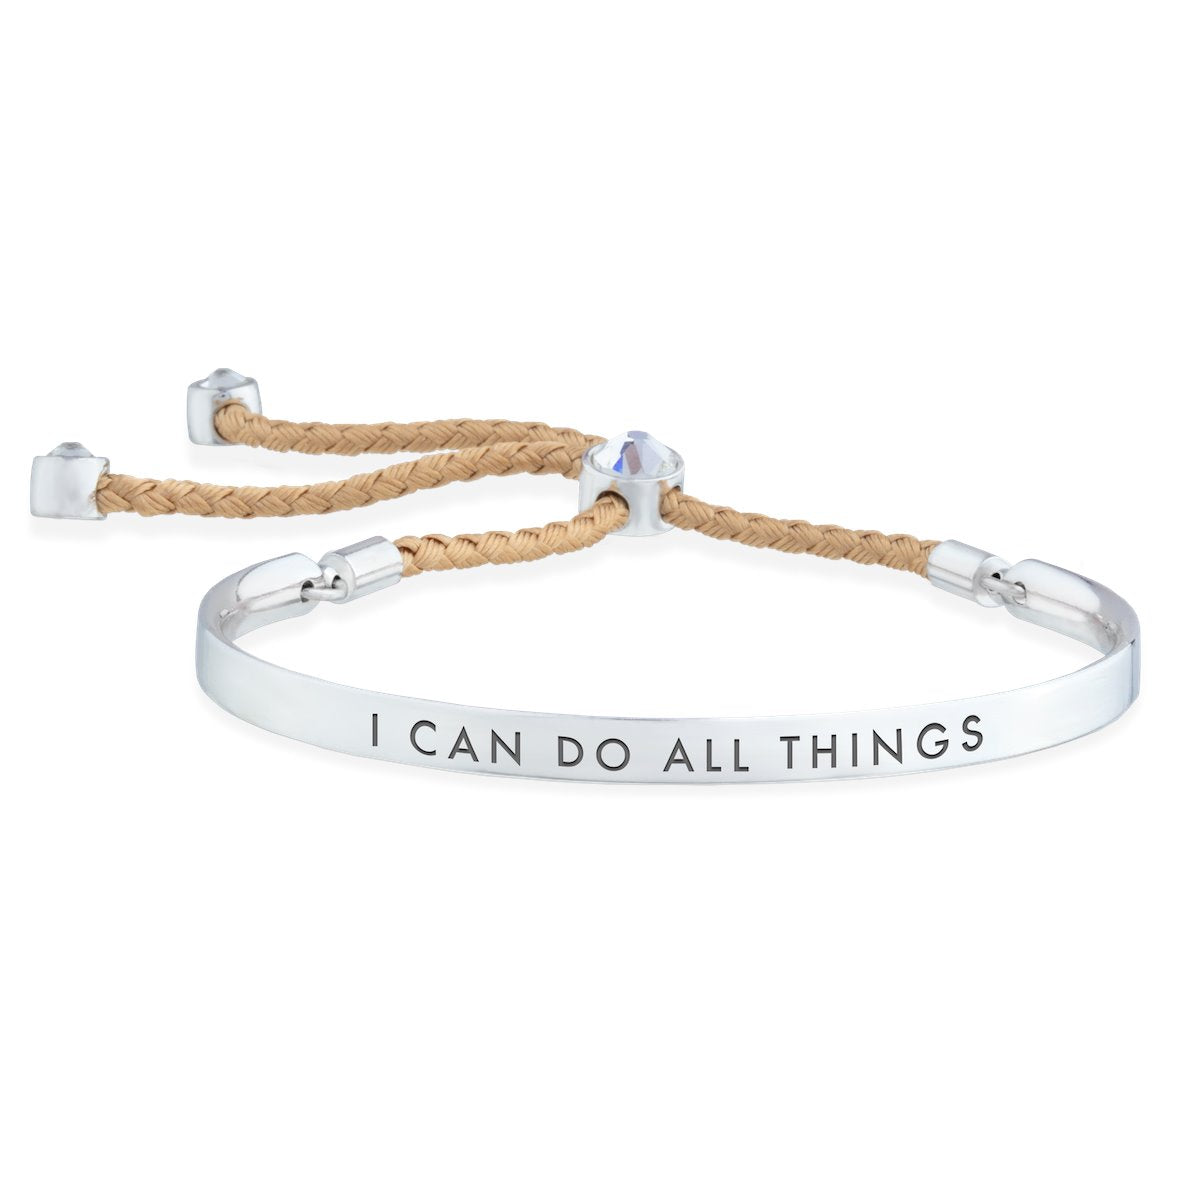 I Can Do All Things – Words of Empowerment Bracelet